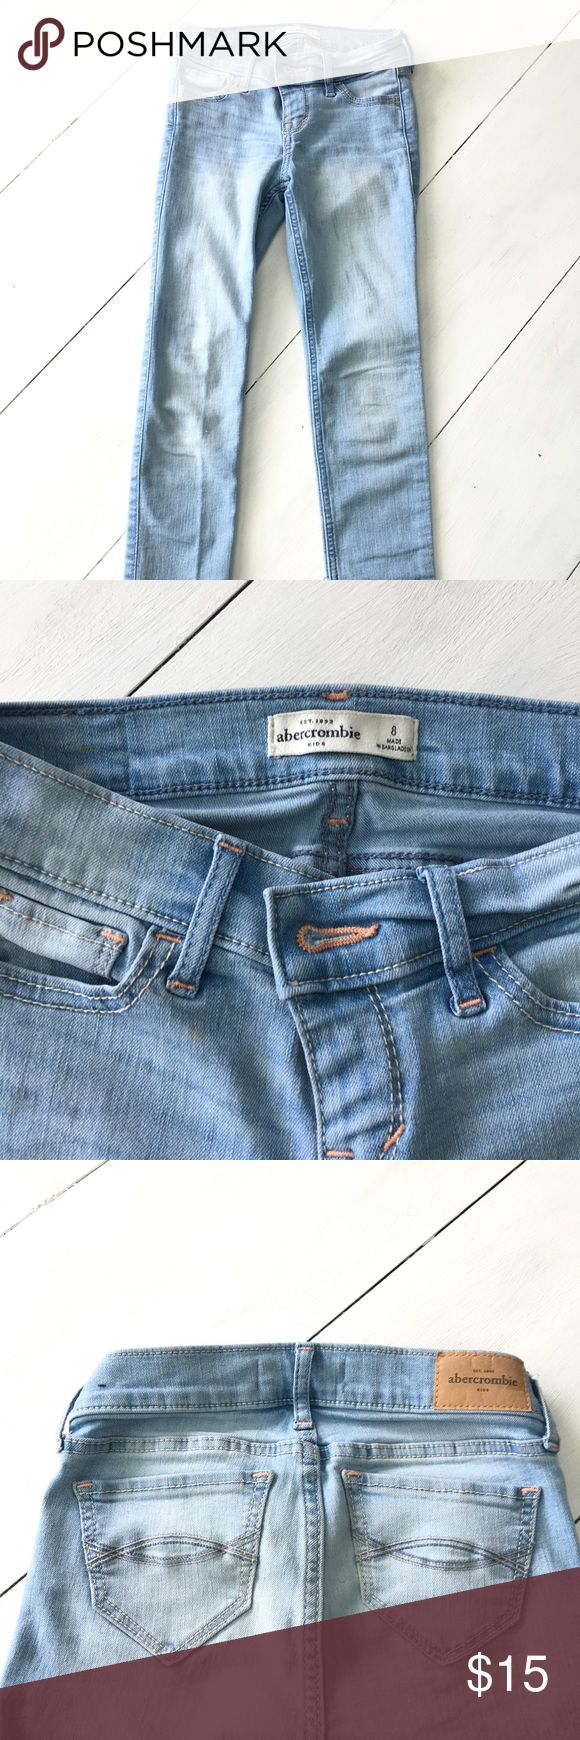 Abercrombie Girls sz 8 super skinny jeans EUC These Abercrombie Girls super skinny jeans are size 8 and a light blue wash. EUC abercrombie kids Bottoms Jeans